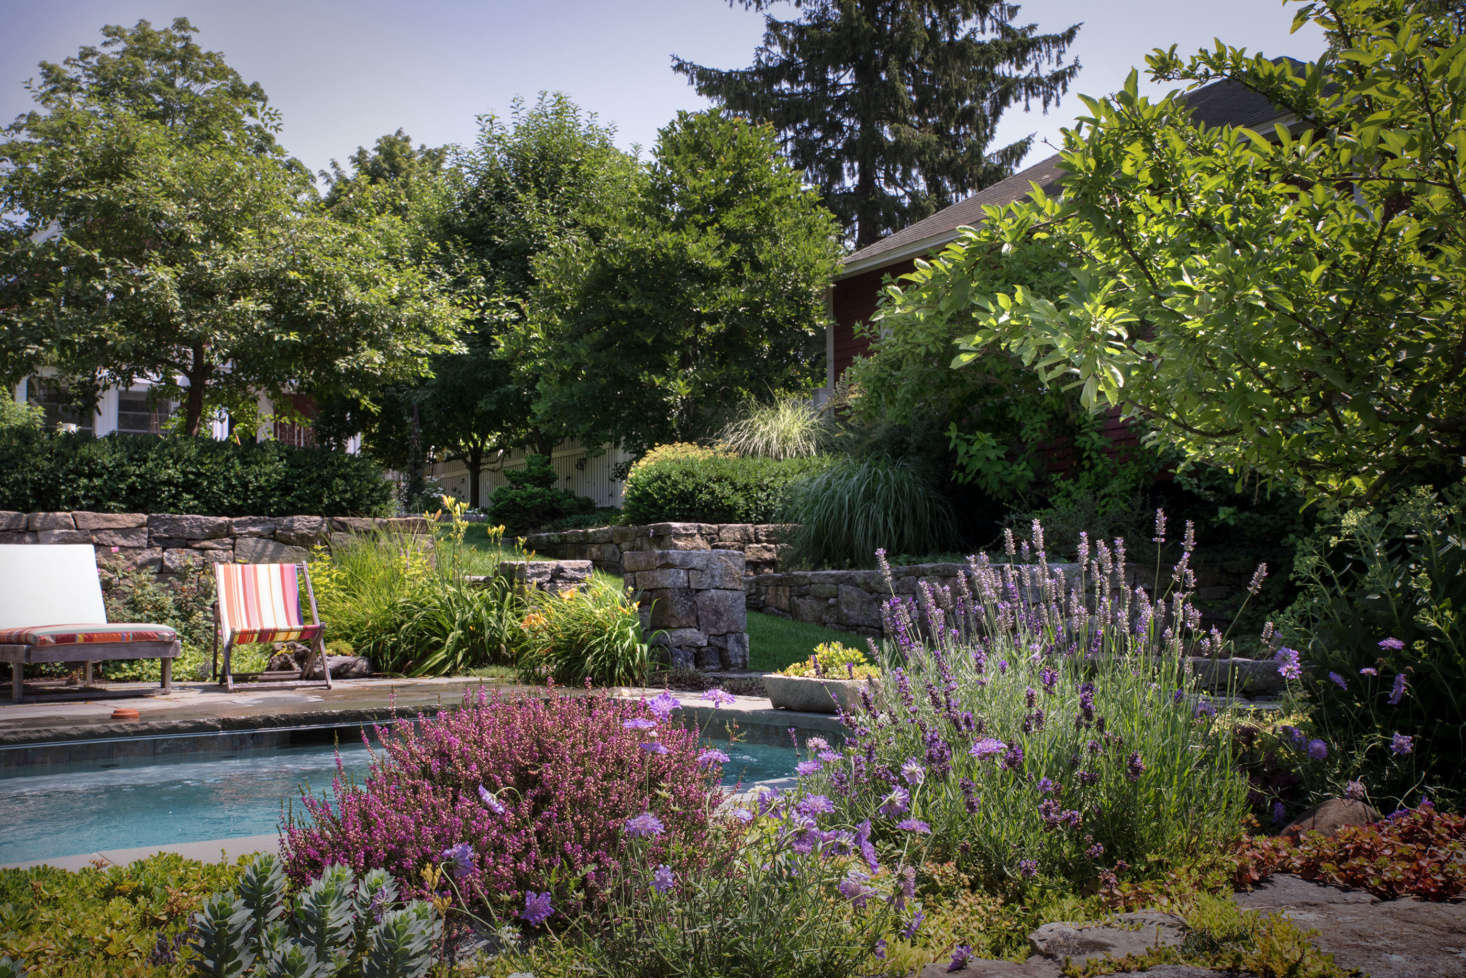 Hidden from the main house by a stone retaining wall and lush plantings, the plunge pool feels like a private oasis. A low rock garden on the opposite side provides an unobstructed view of the woods that abut the property.